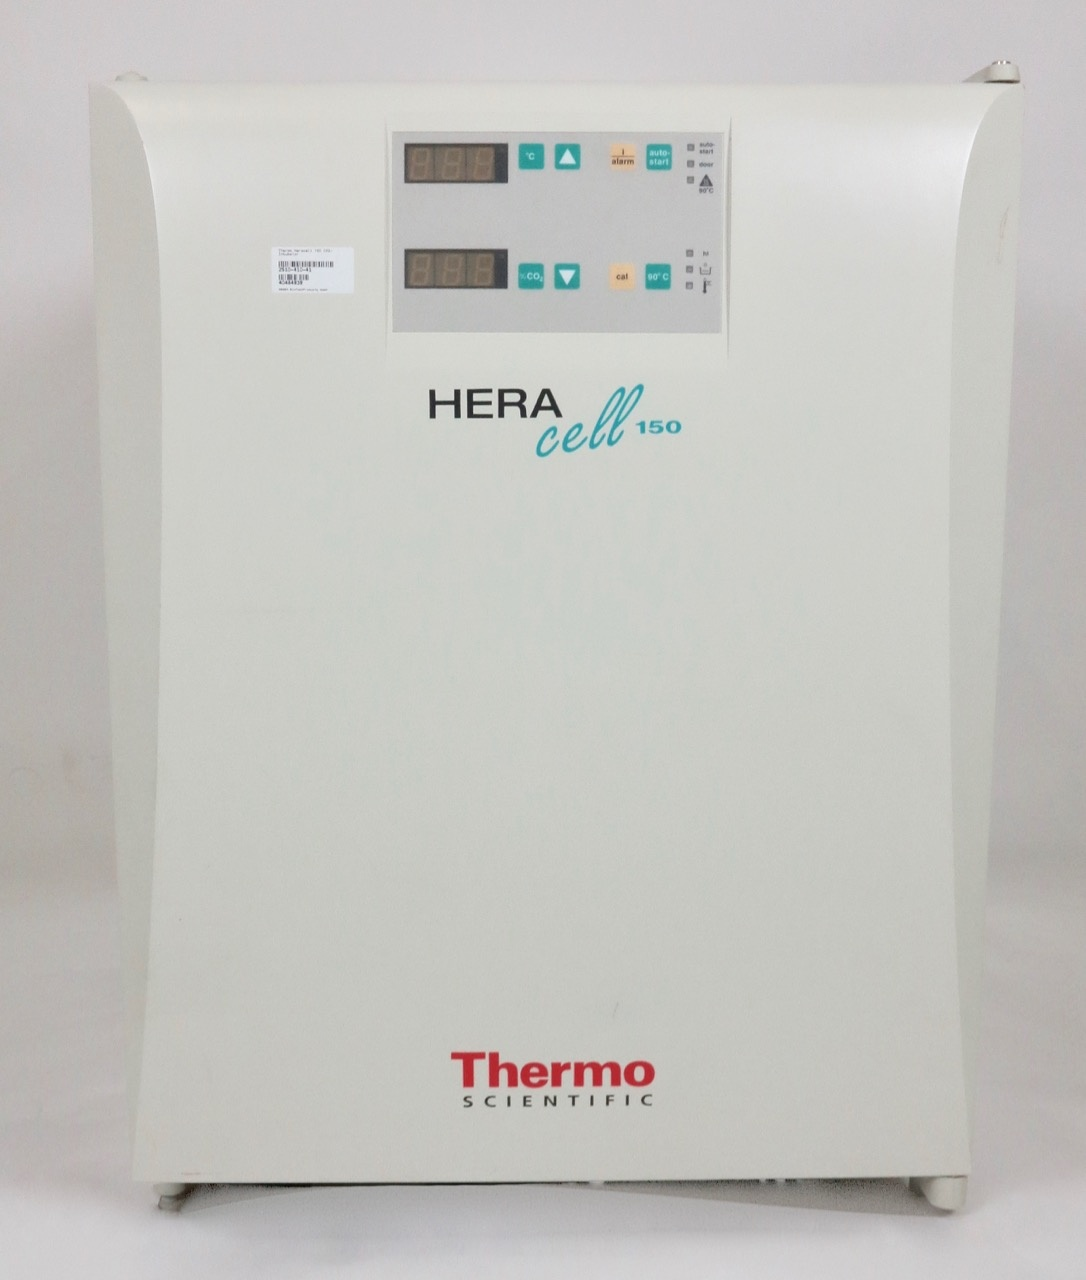 Thermo Scientific Thermo Heracell 150 CO2-Incubator (stainless steel)